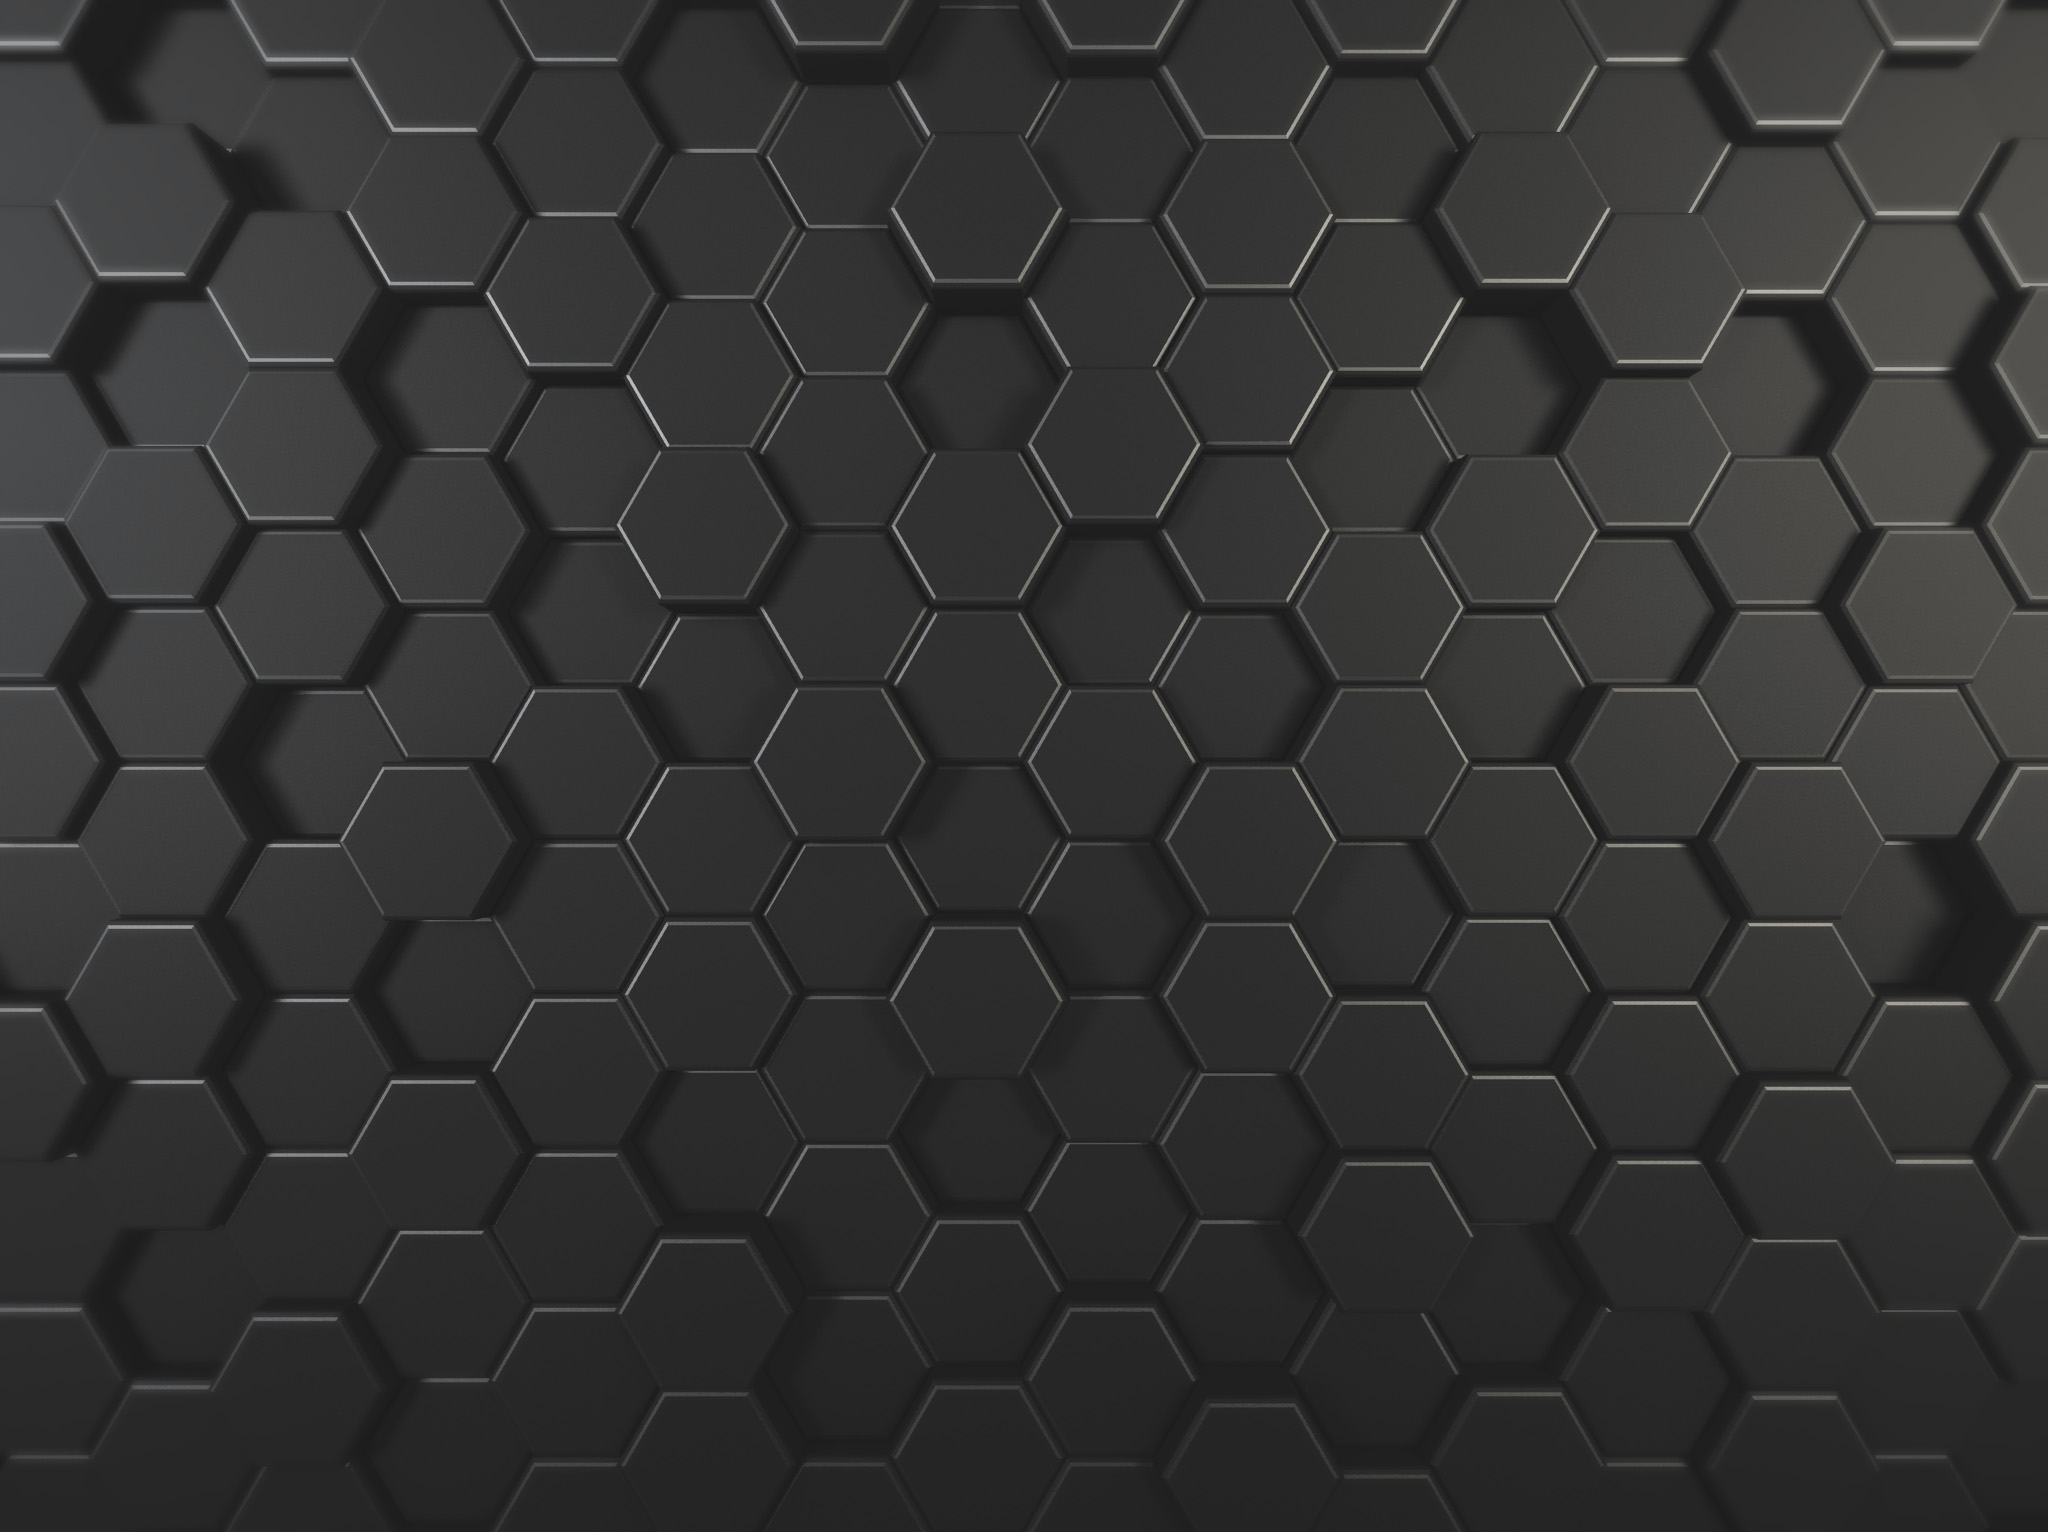 Ipad 3d Blocks Wallpaper Homage By Scifinity On Deviantart